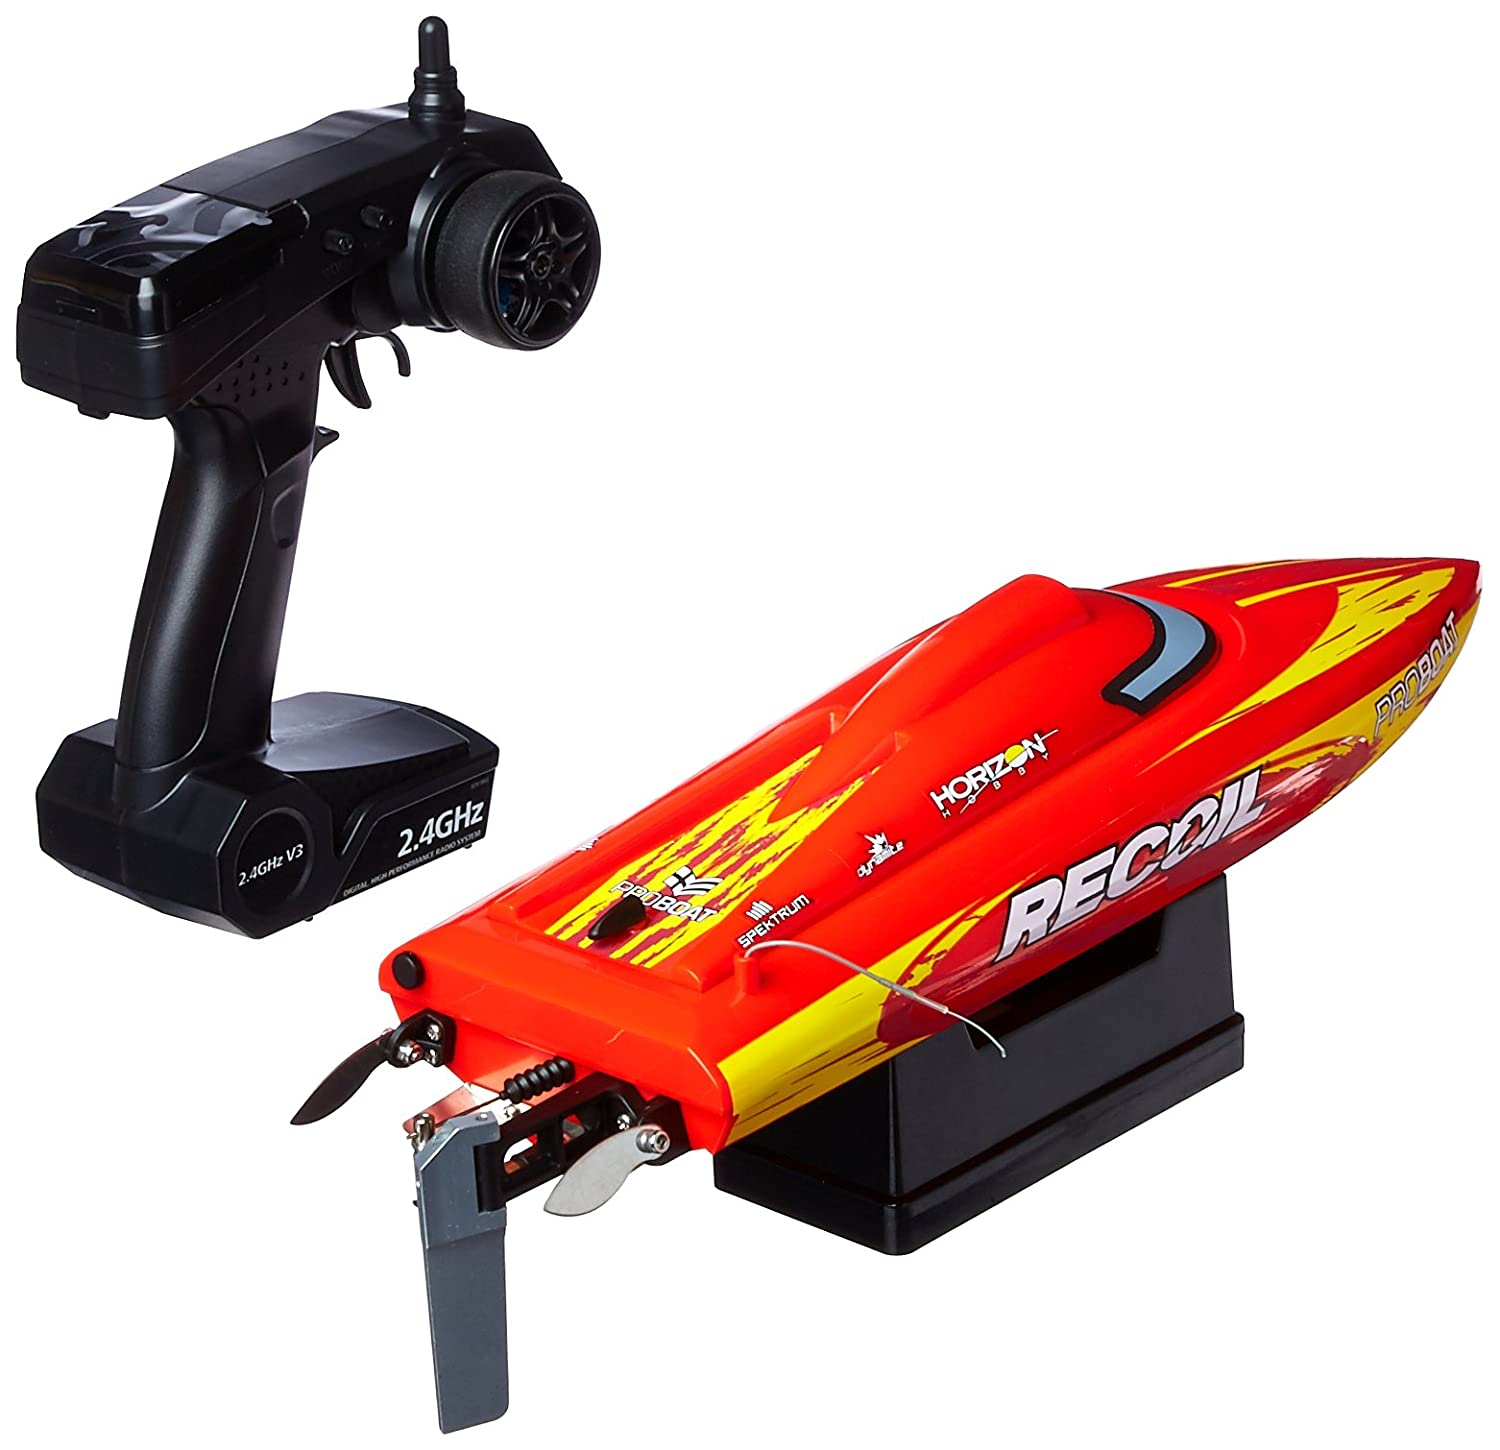 Amazon Pro Boat Recoil 17 inch Self Righting Deep V Brushless RTR RC Boat Toys & Games